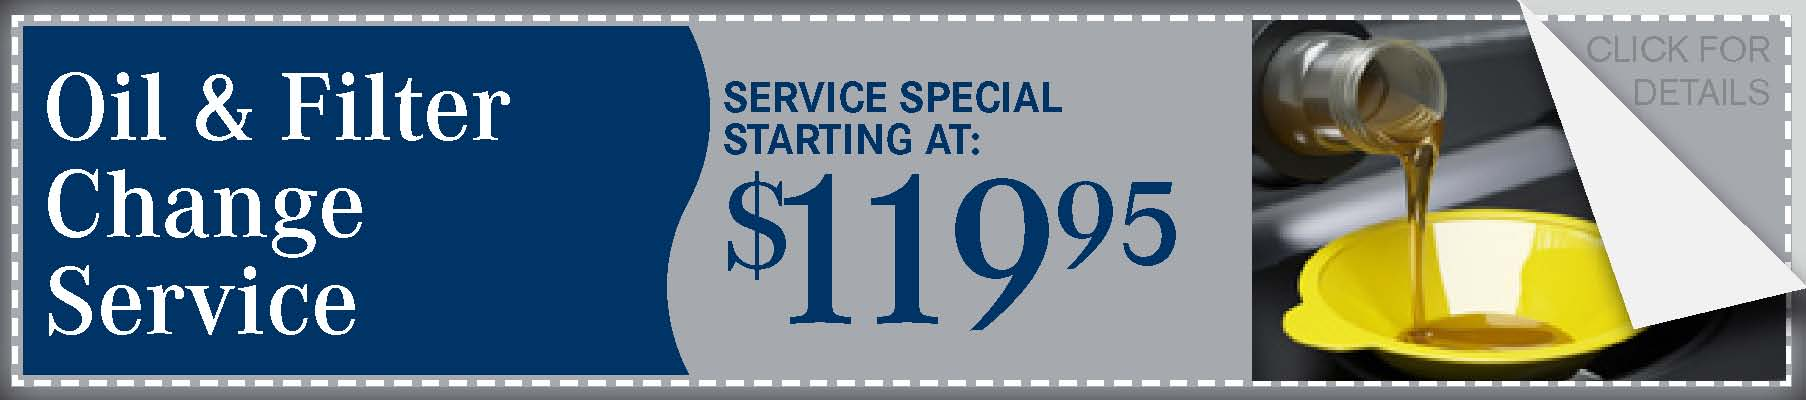 Oil & Filter Change Service Coupon, Lincoln